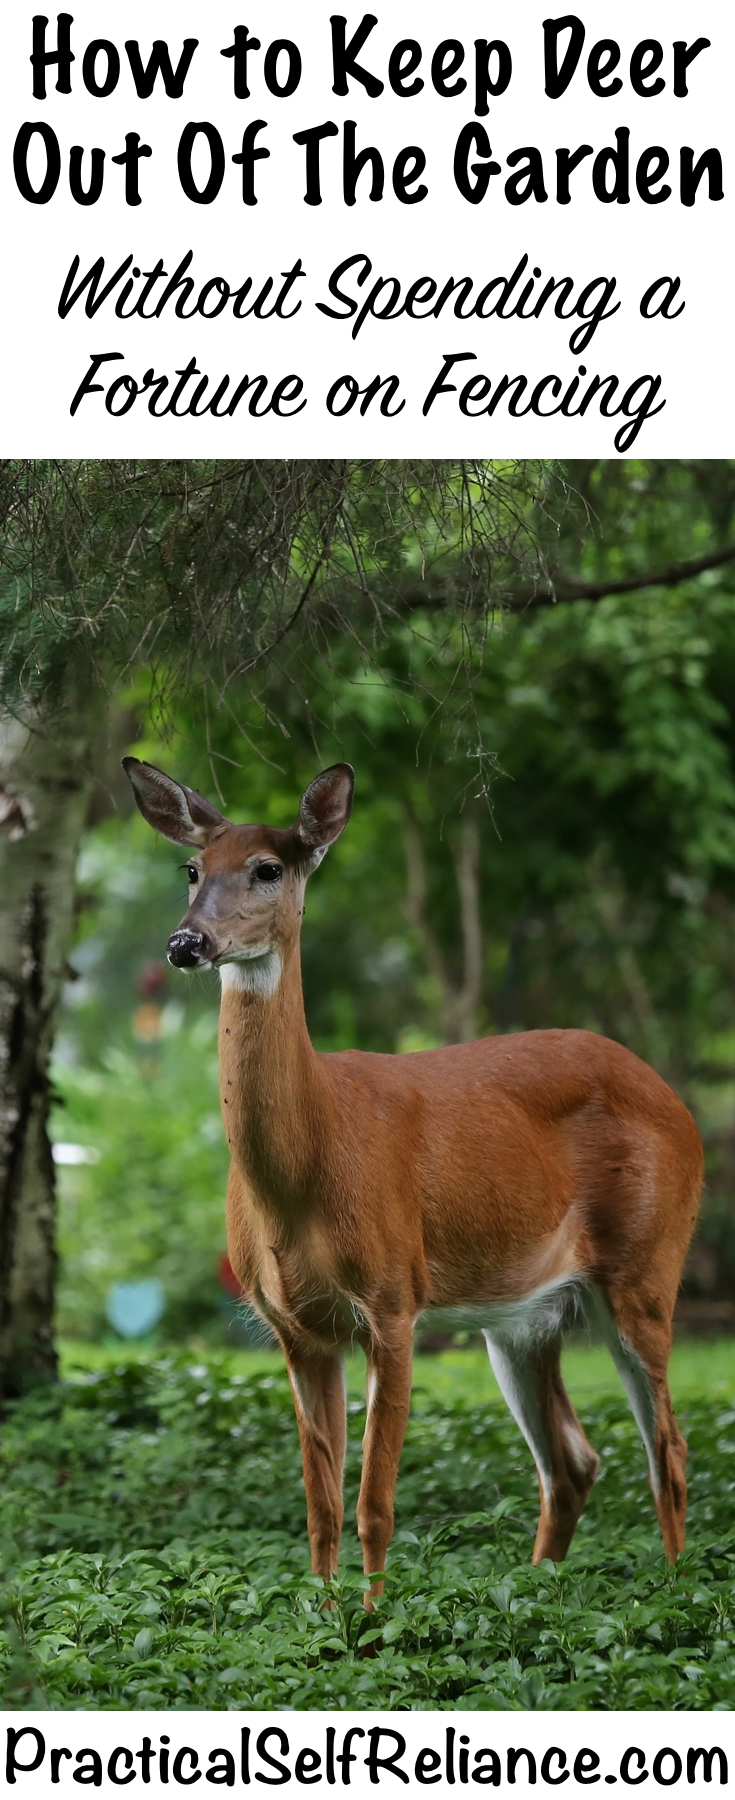 How to Keep Deer Out of the Garden